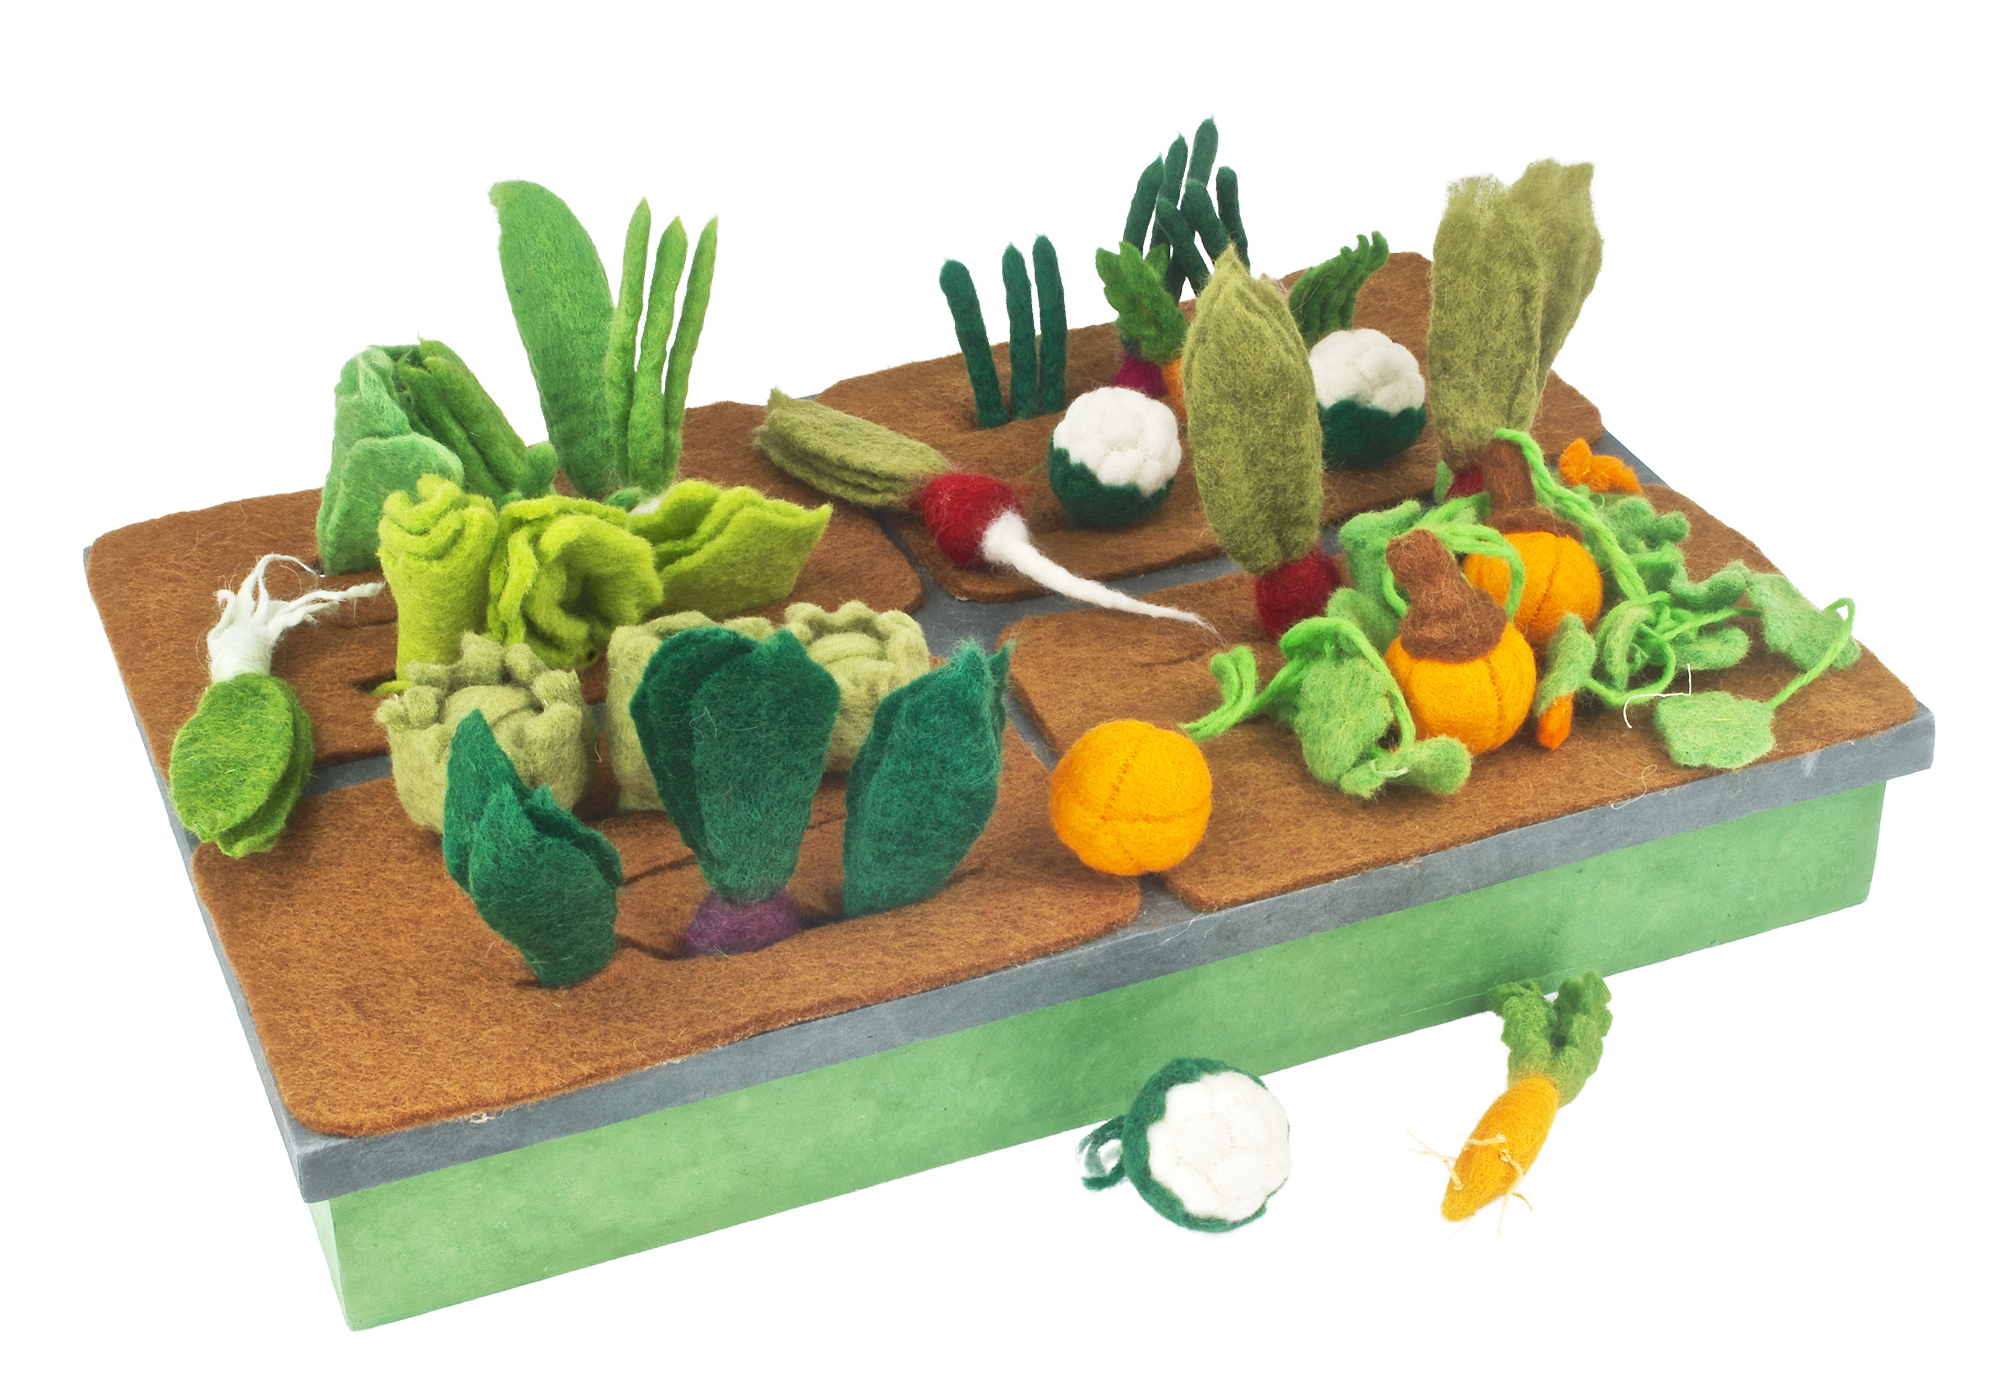 Grow Your Own Felt Garden